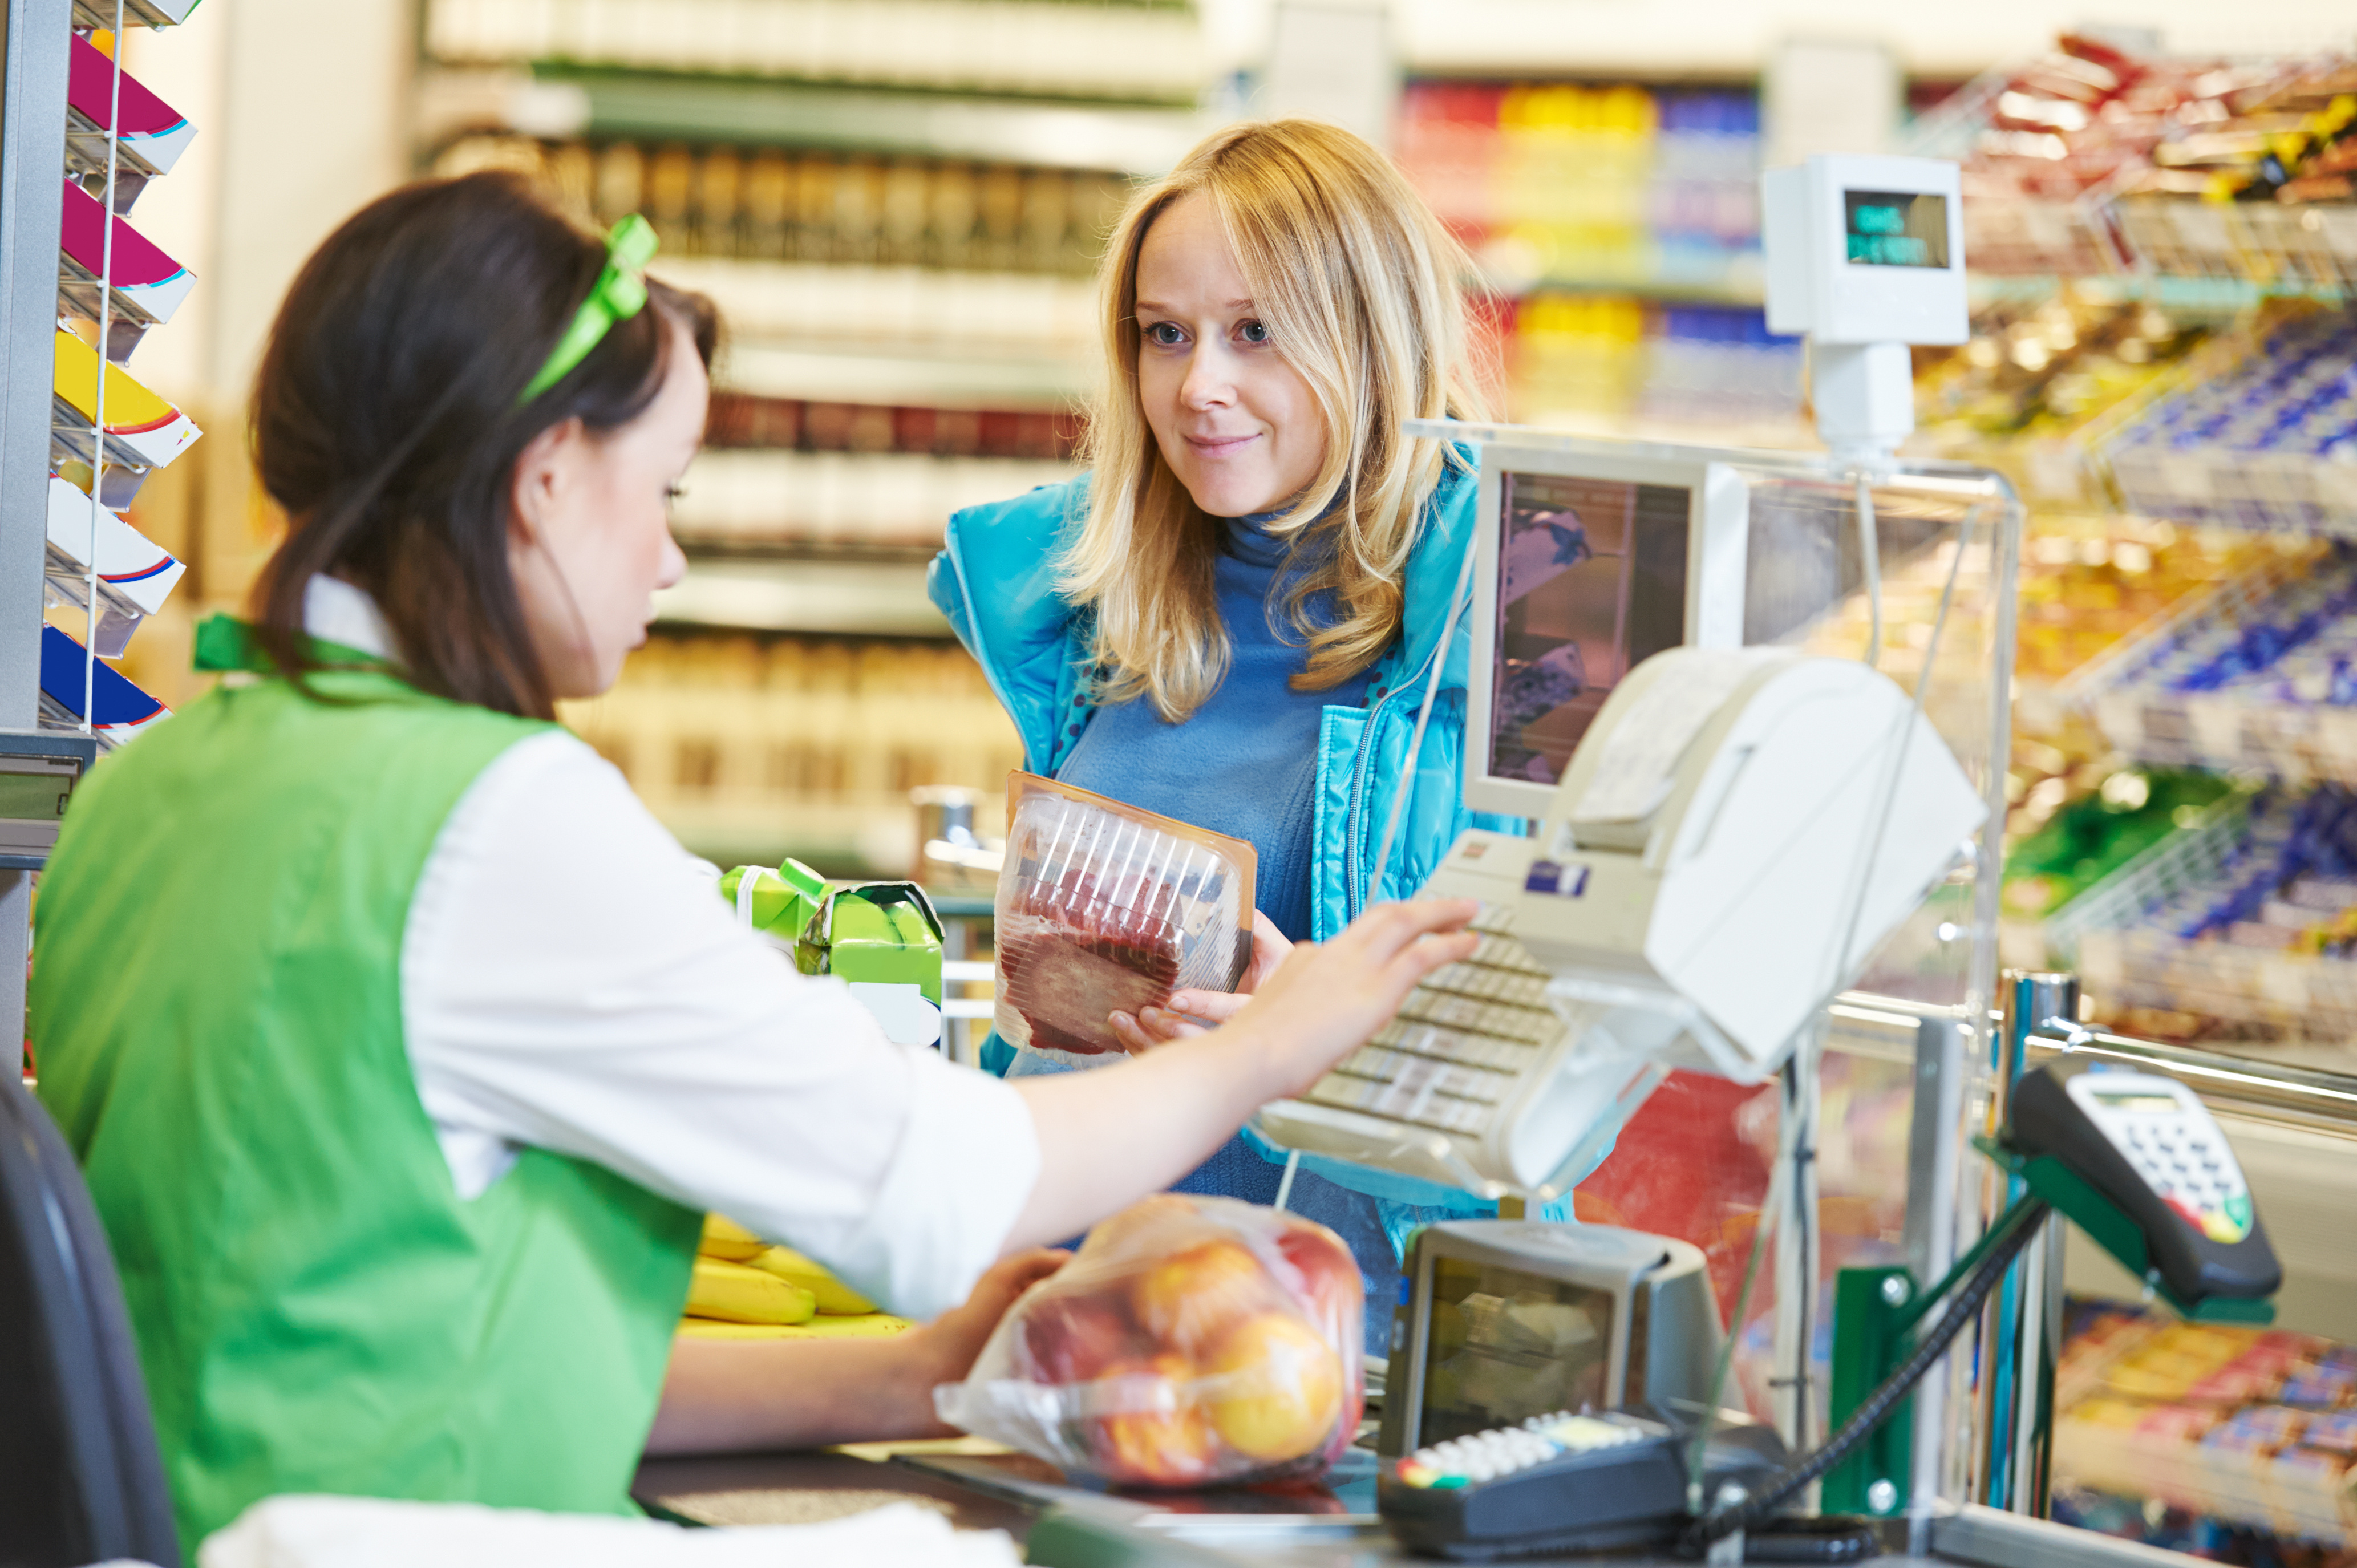 Benchmark Technology Group offers their services to retail establishments